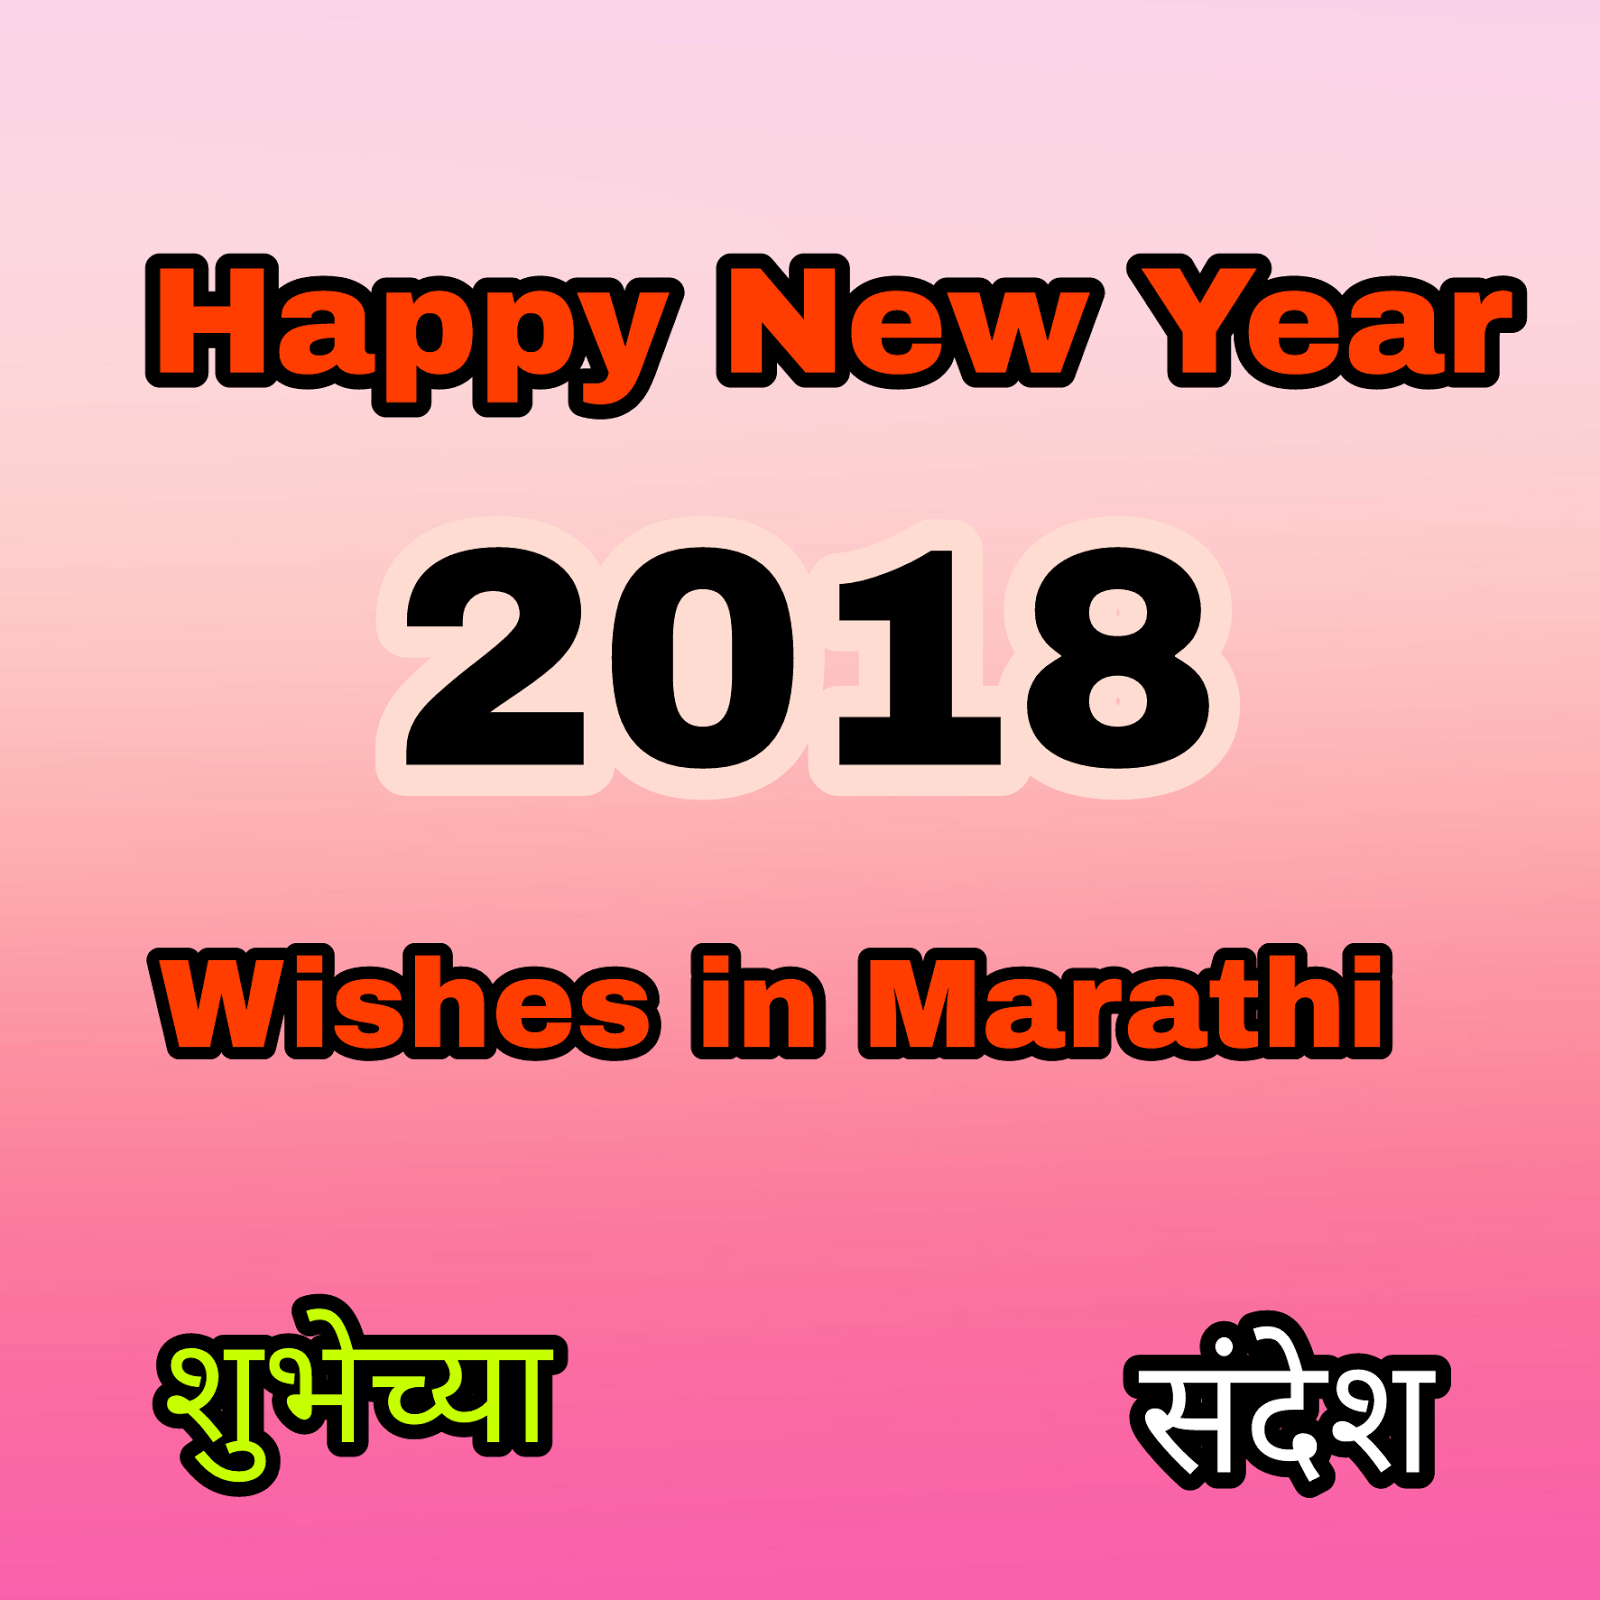 happy new year wishes in marathi image massage card